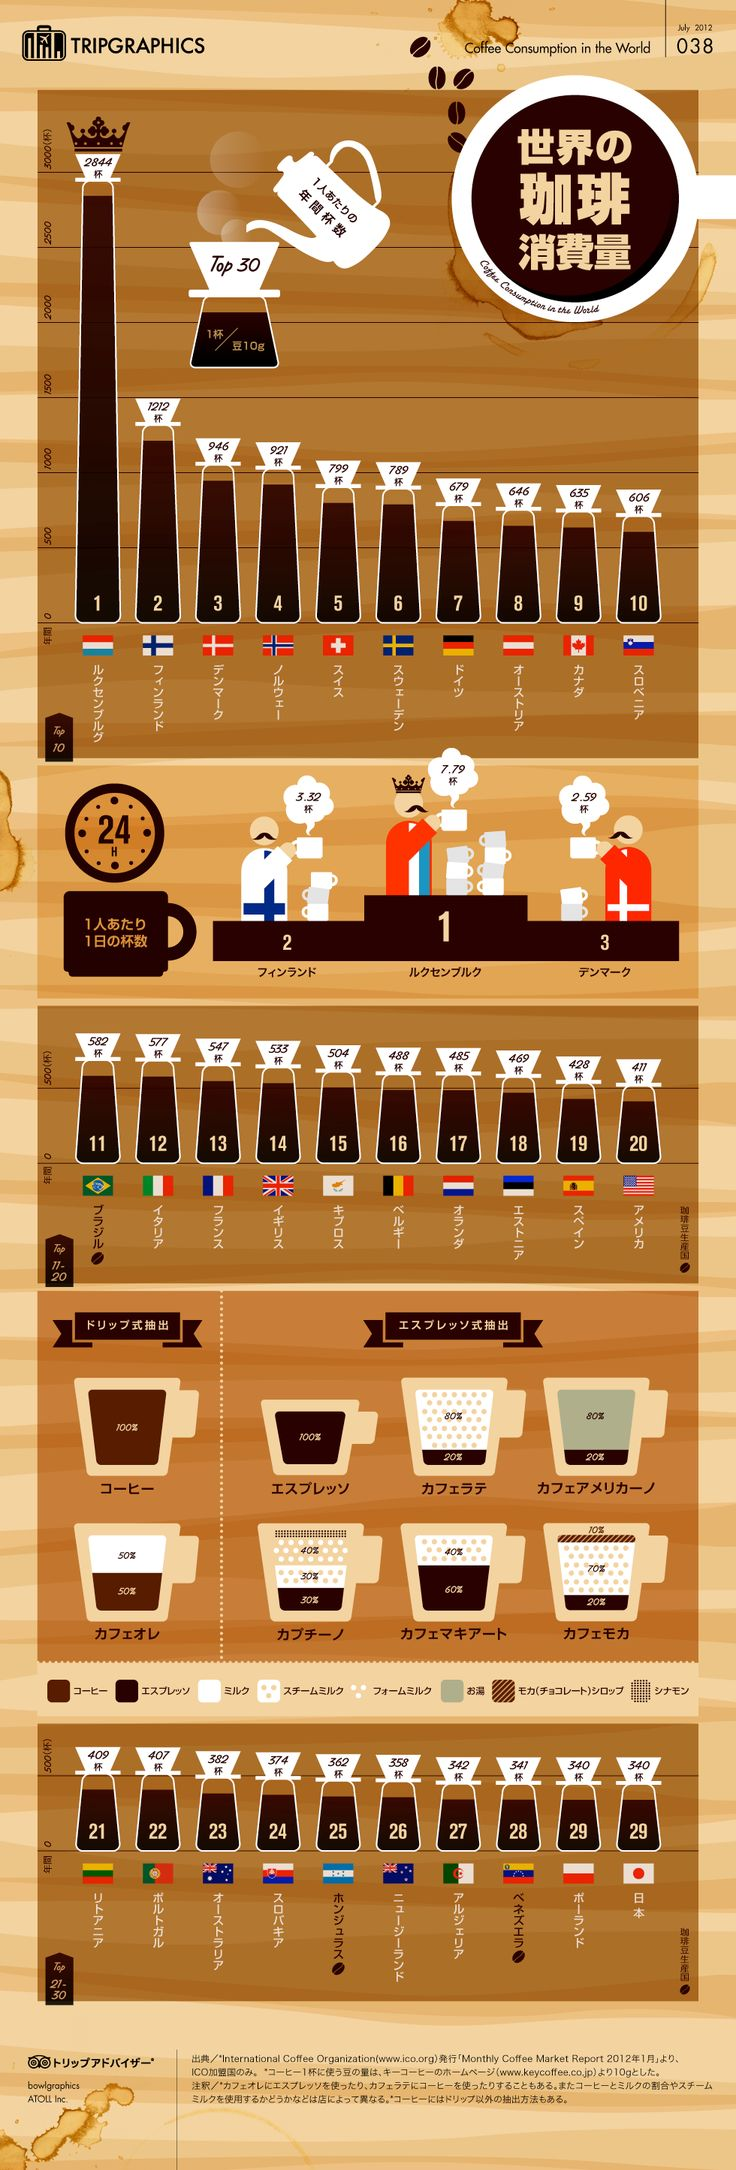 World Coffee Consumption